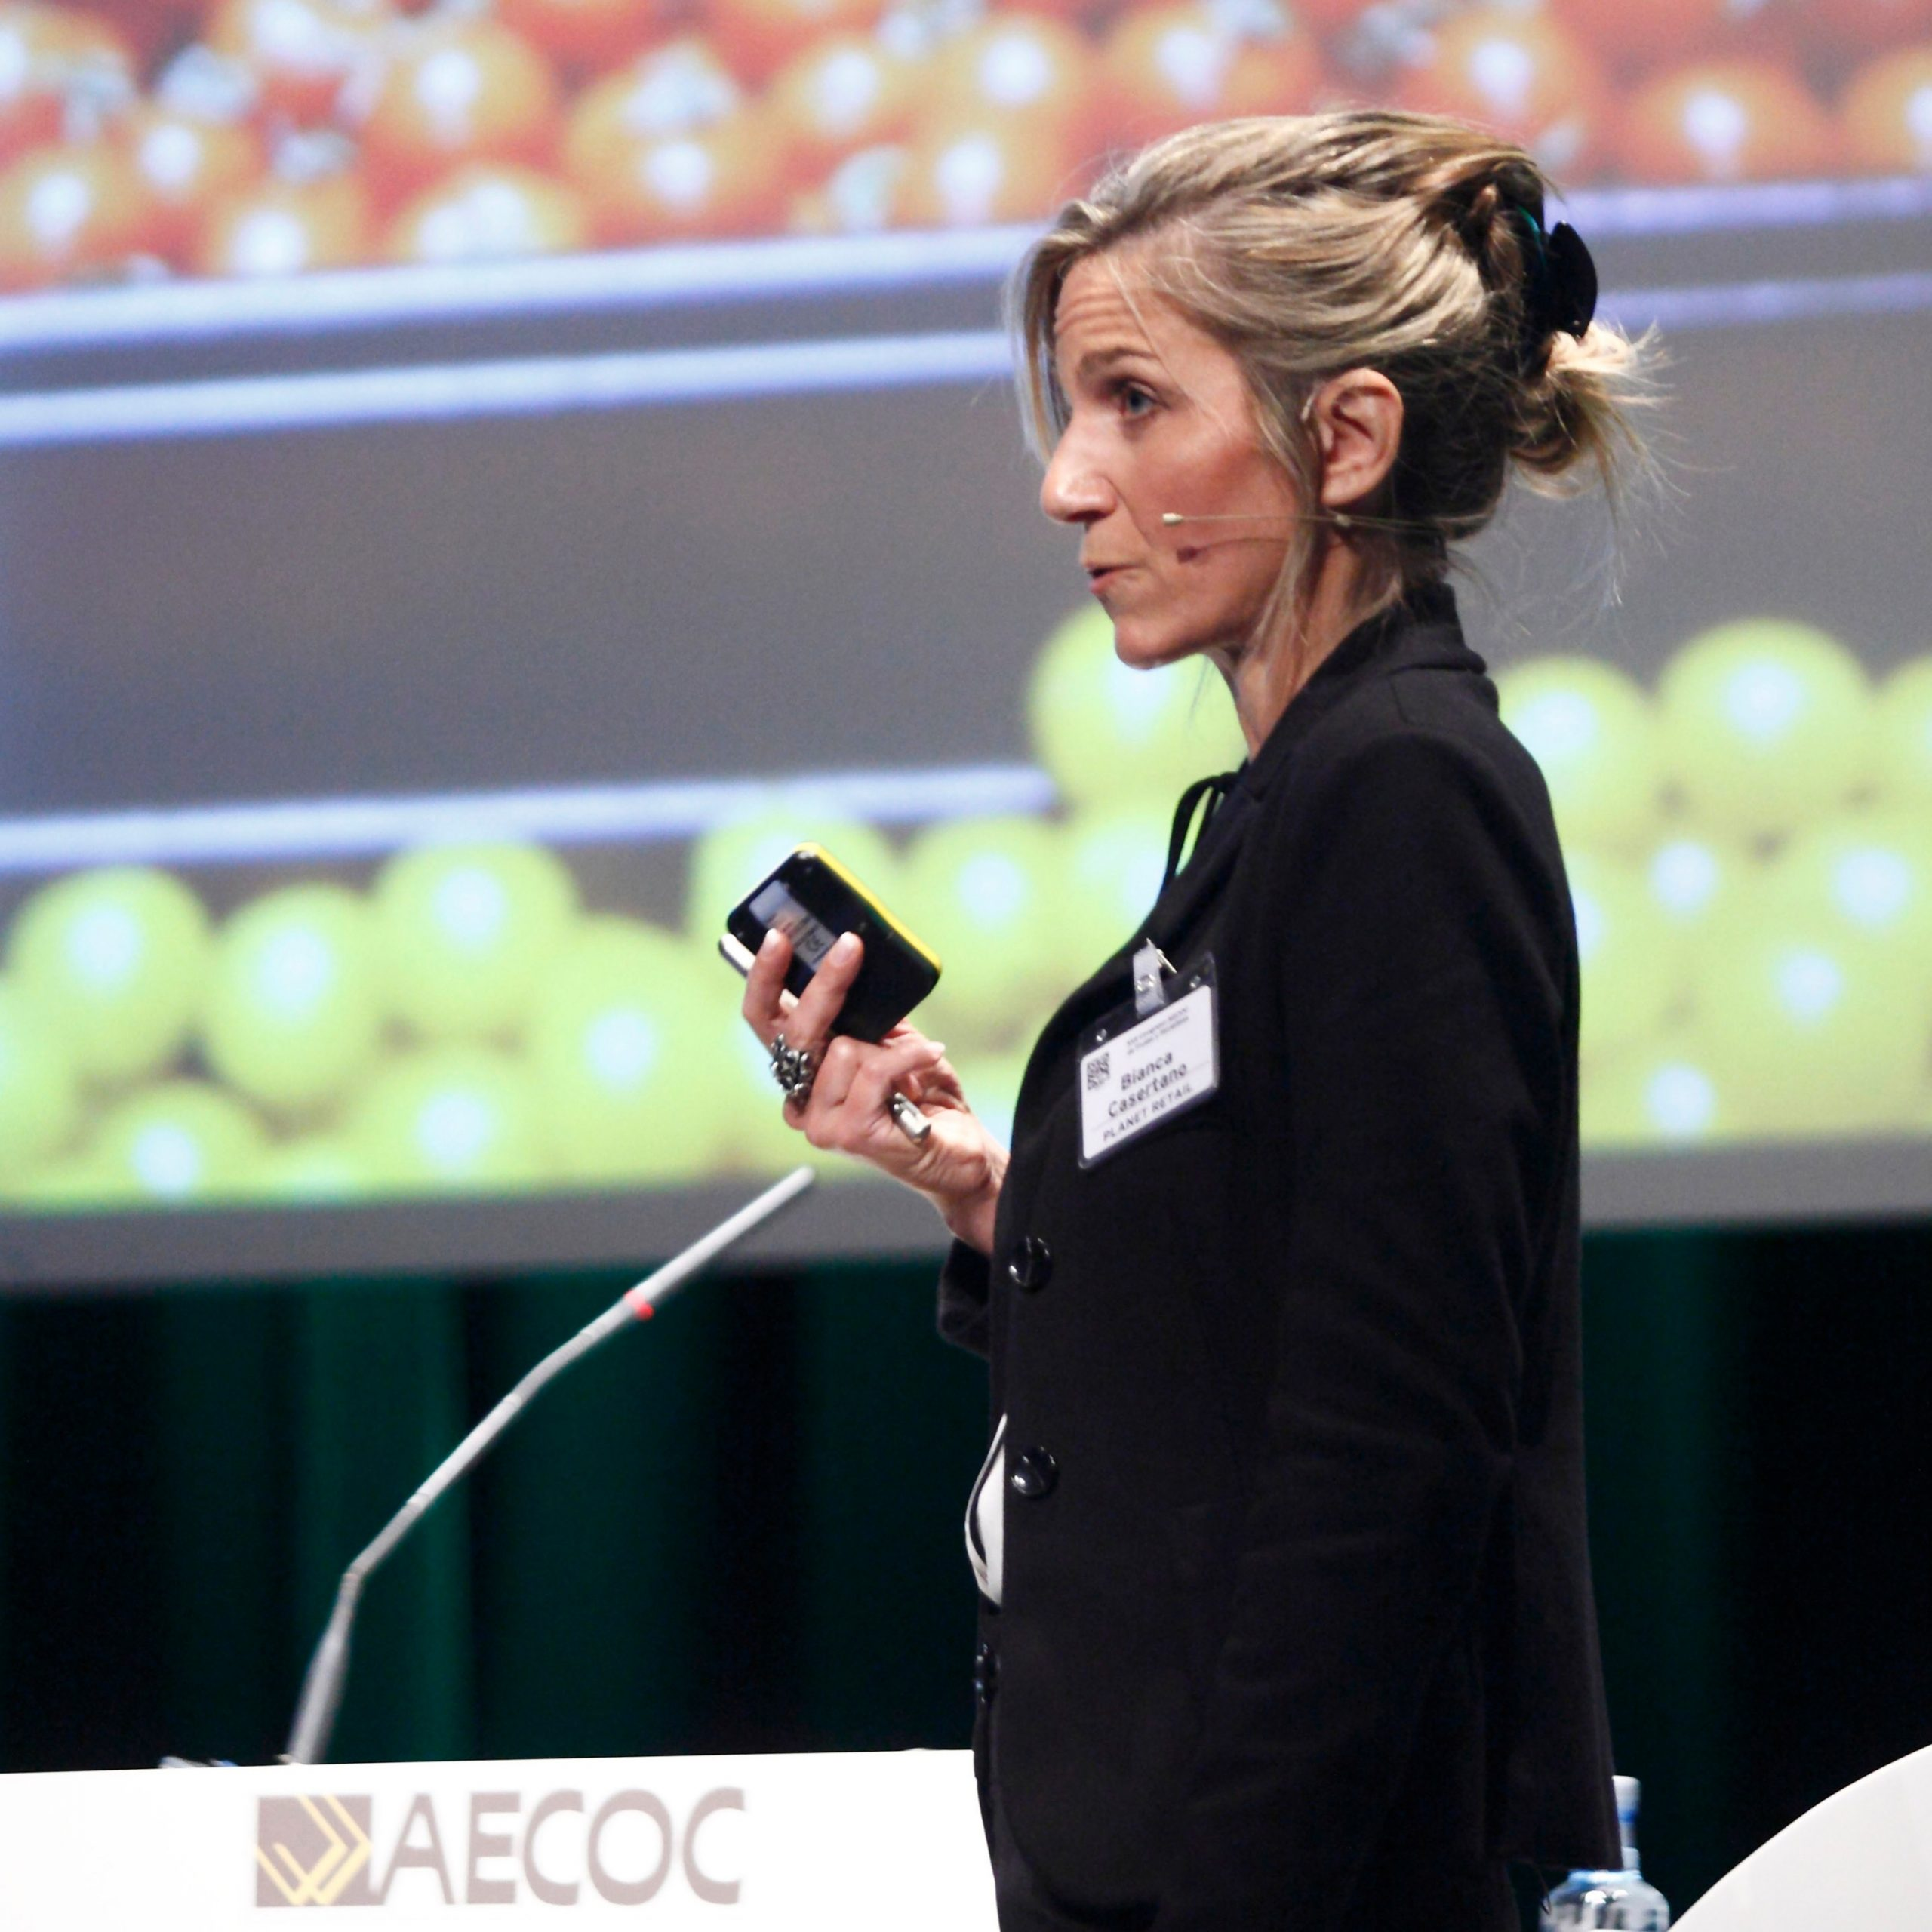 Planet Retail's Bianca Casertano on how Europe's changing retail sector will affect the fresh fruit and vegetables category.